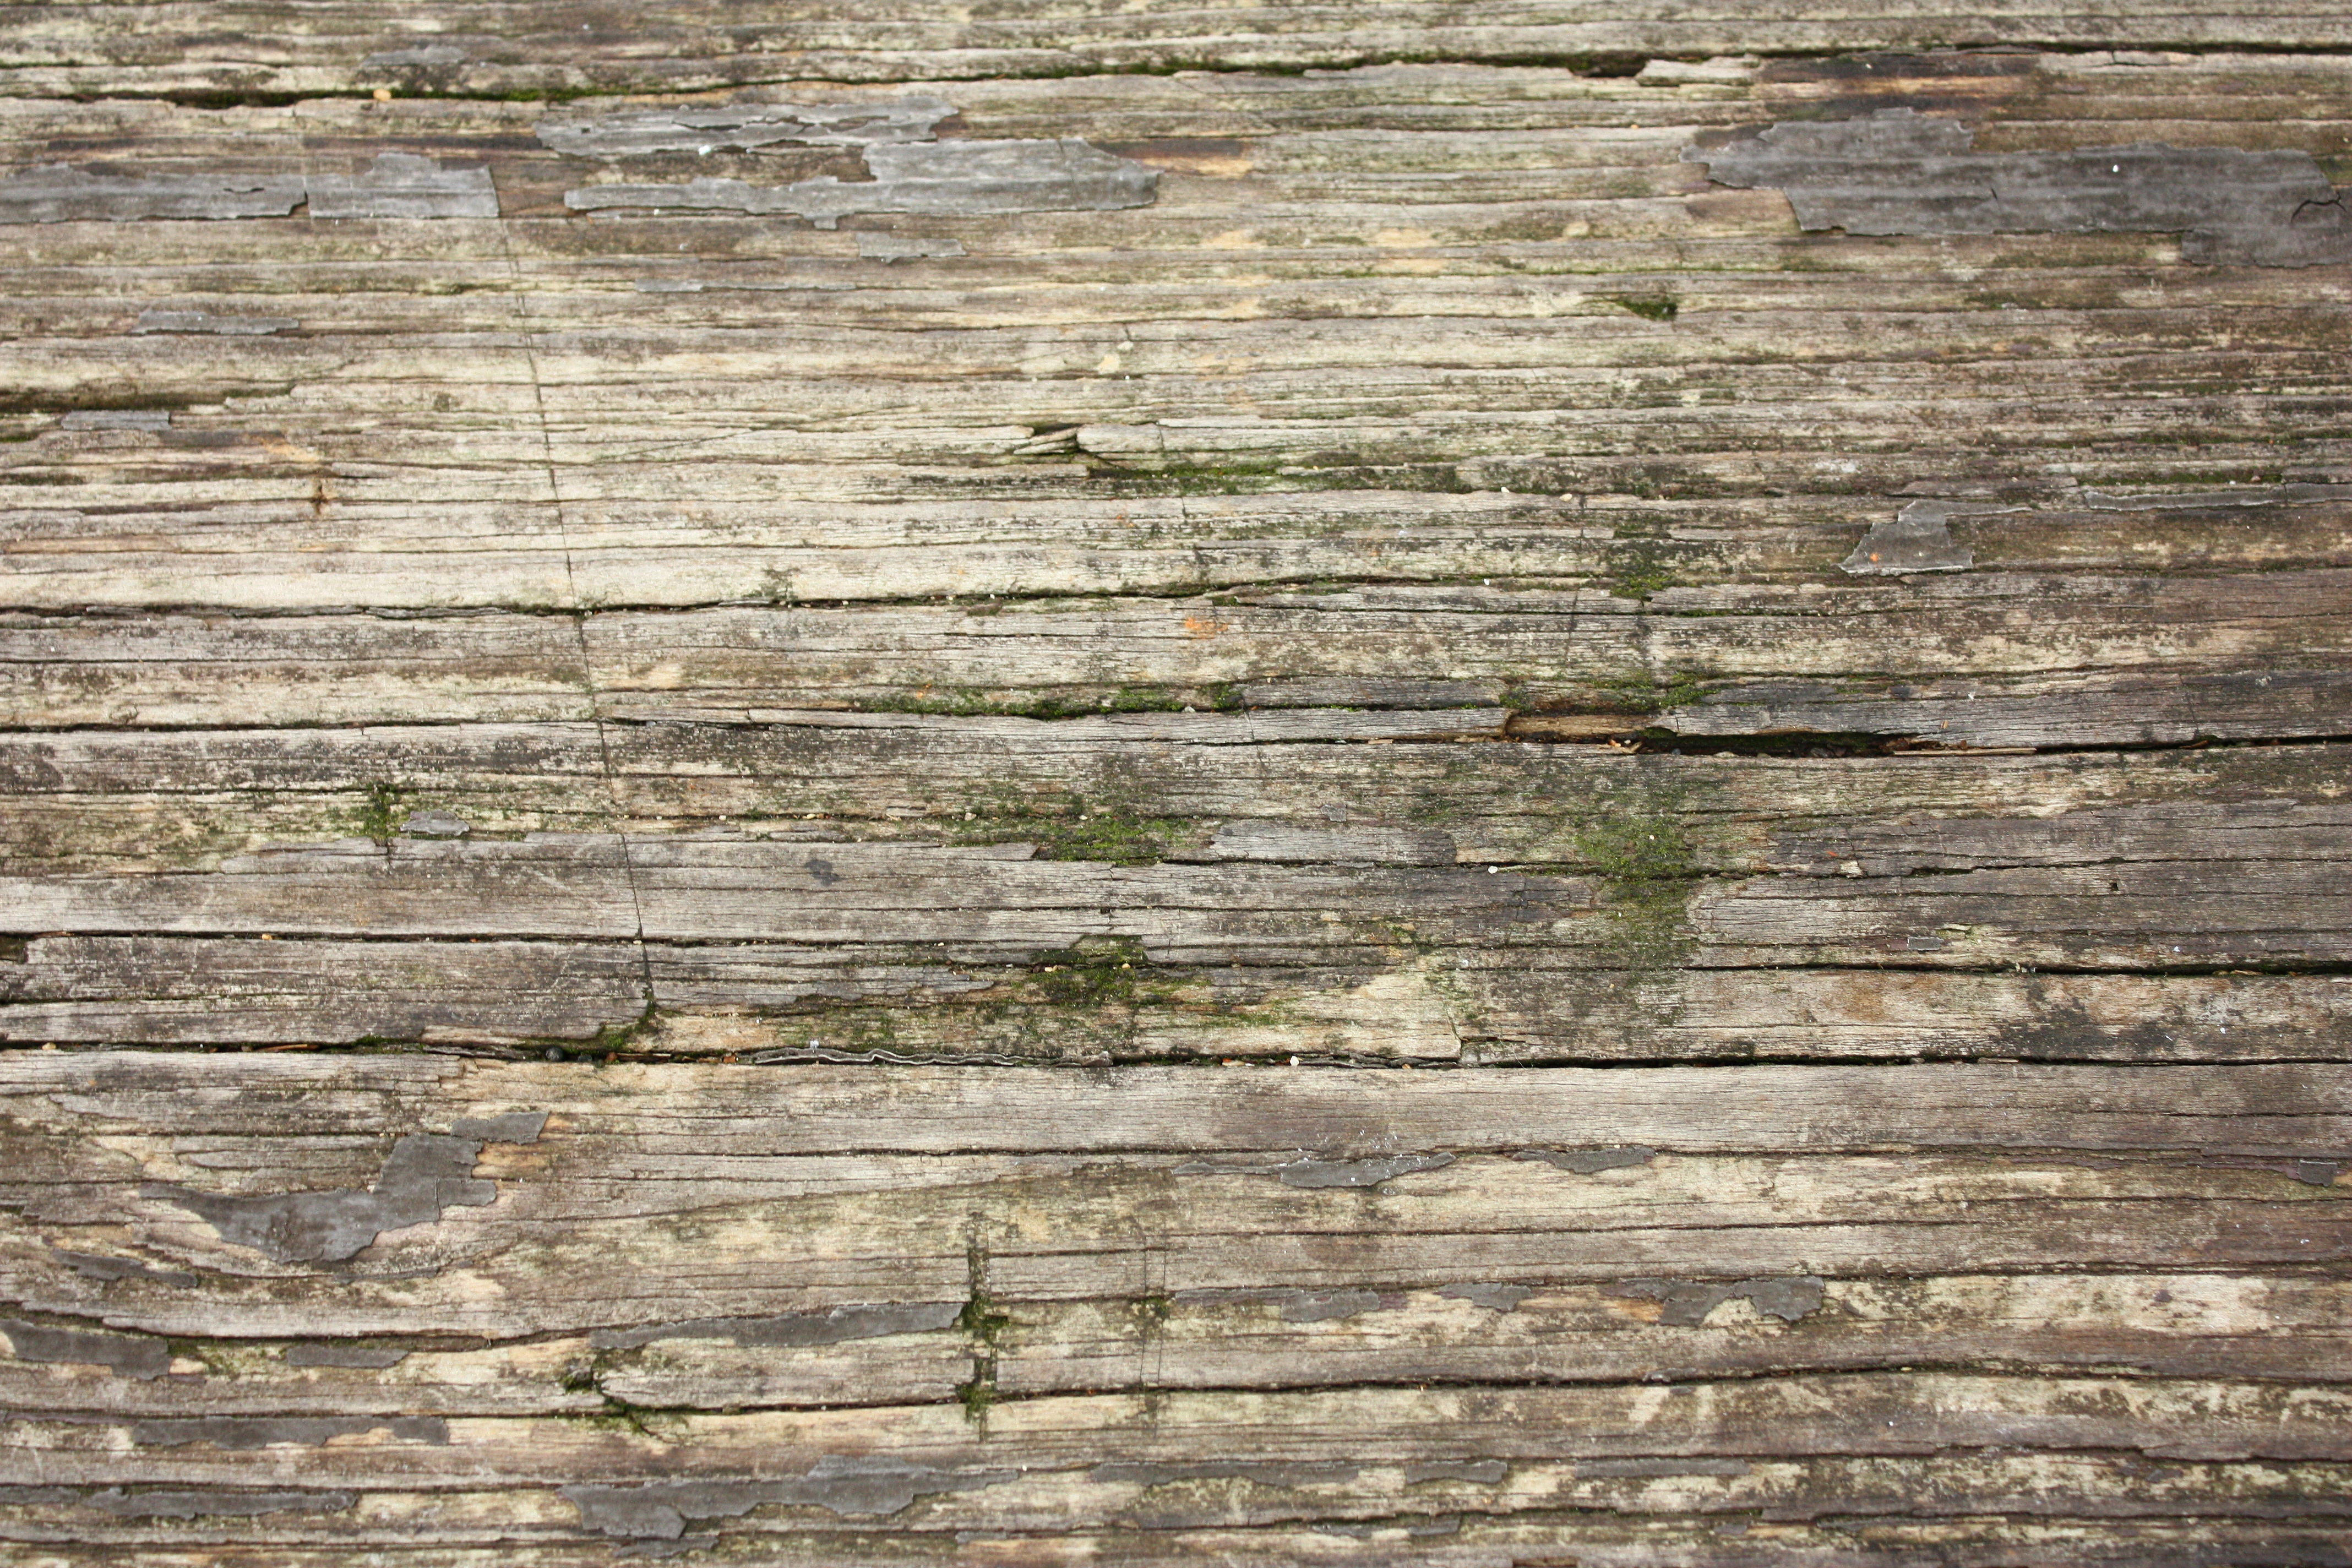 Close-up of wood grain with moss, Grain, Moss, Nature, Wood, HQ Photo